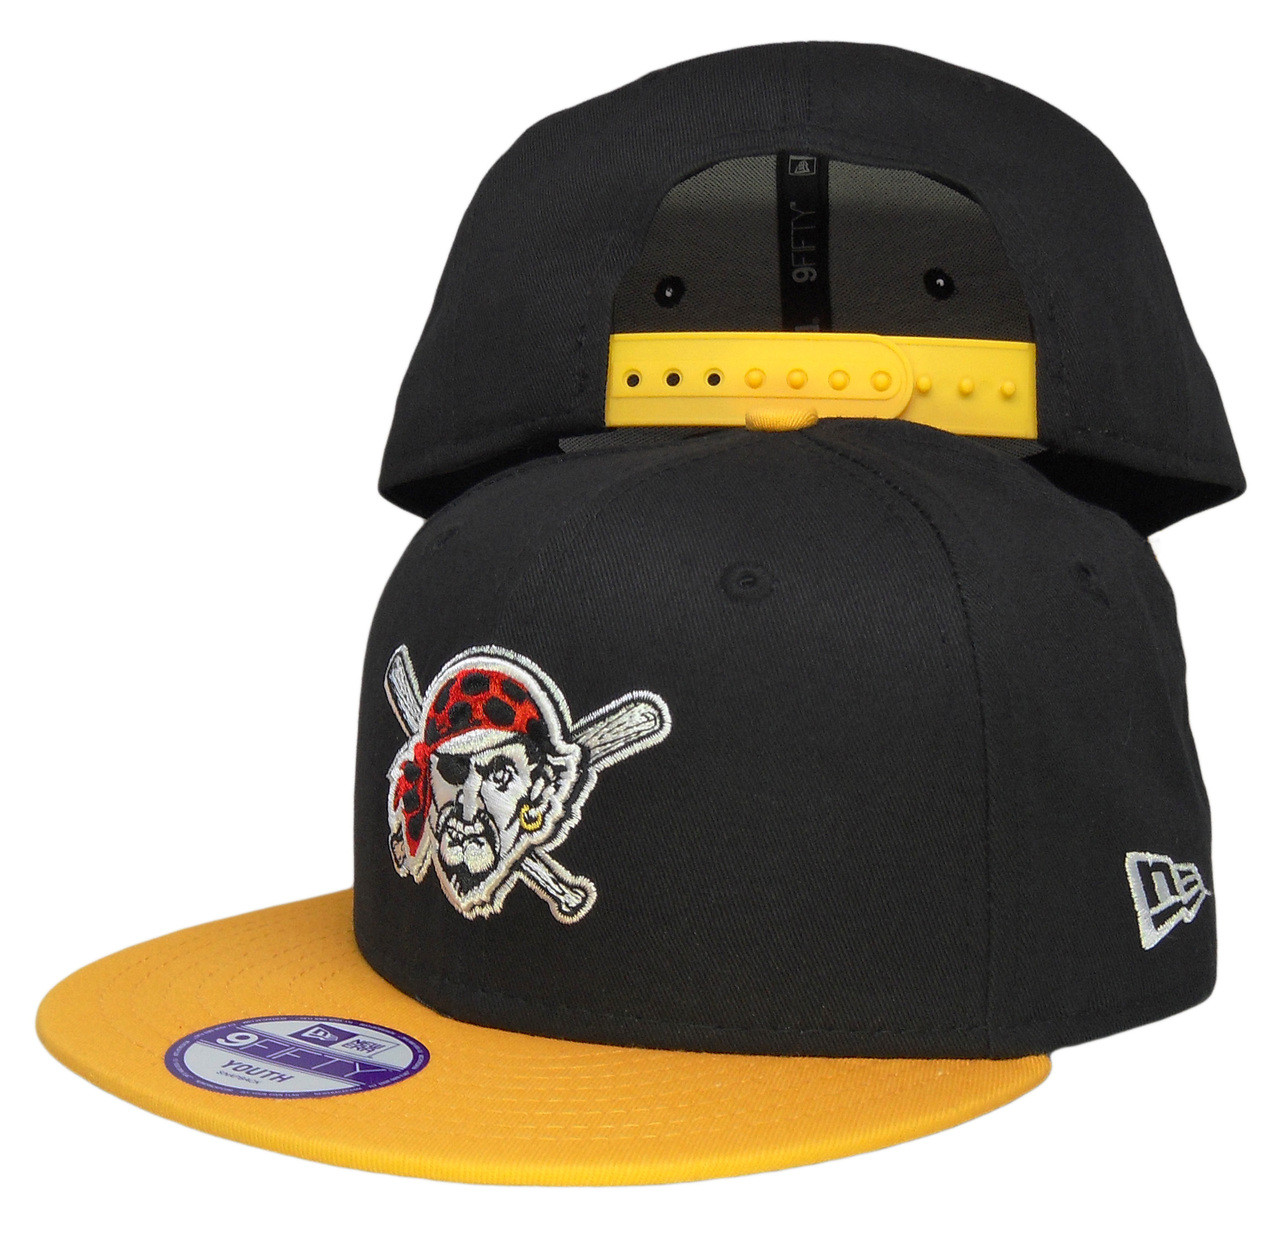 another chance eef7b 33545 Pittsburgh Pirate New Era Kids 2Tone Snapback Hat - Black, Yellow, White,  Red - ECapsUnlimited.com